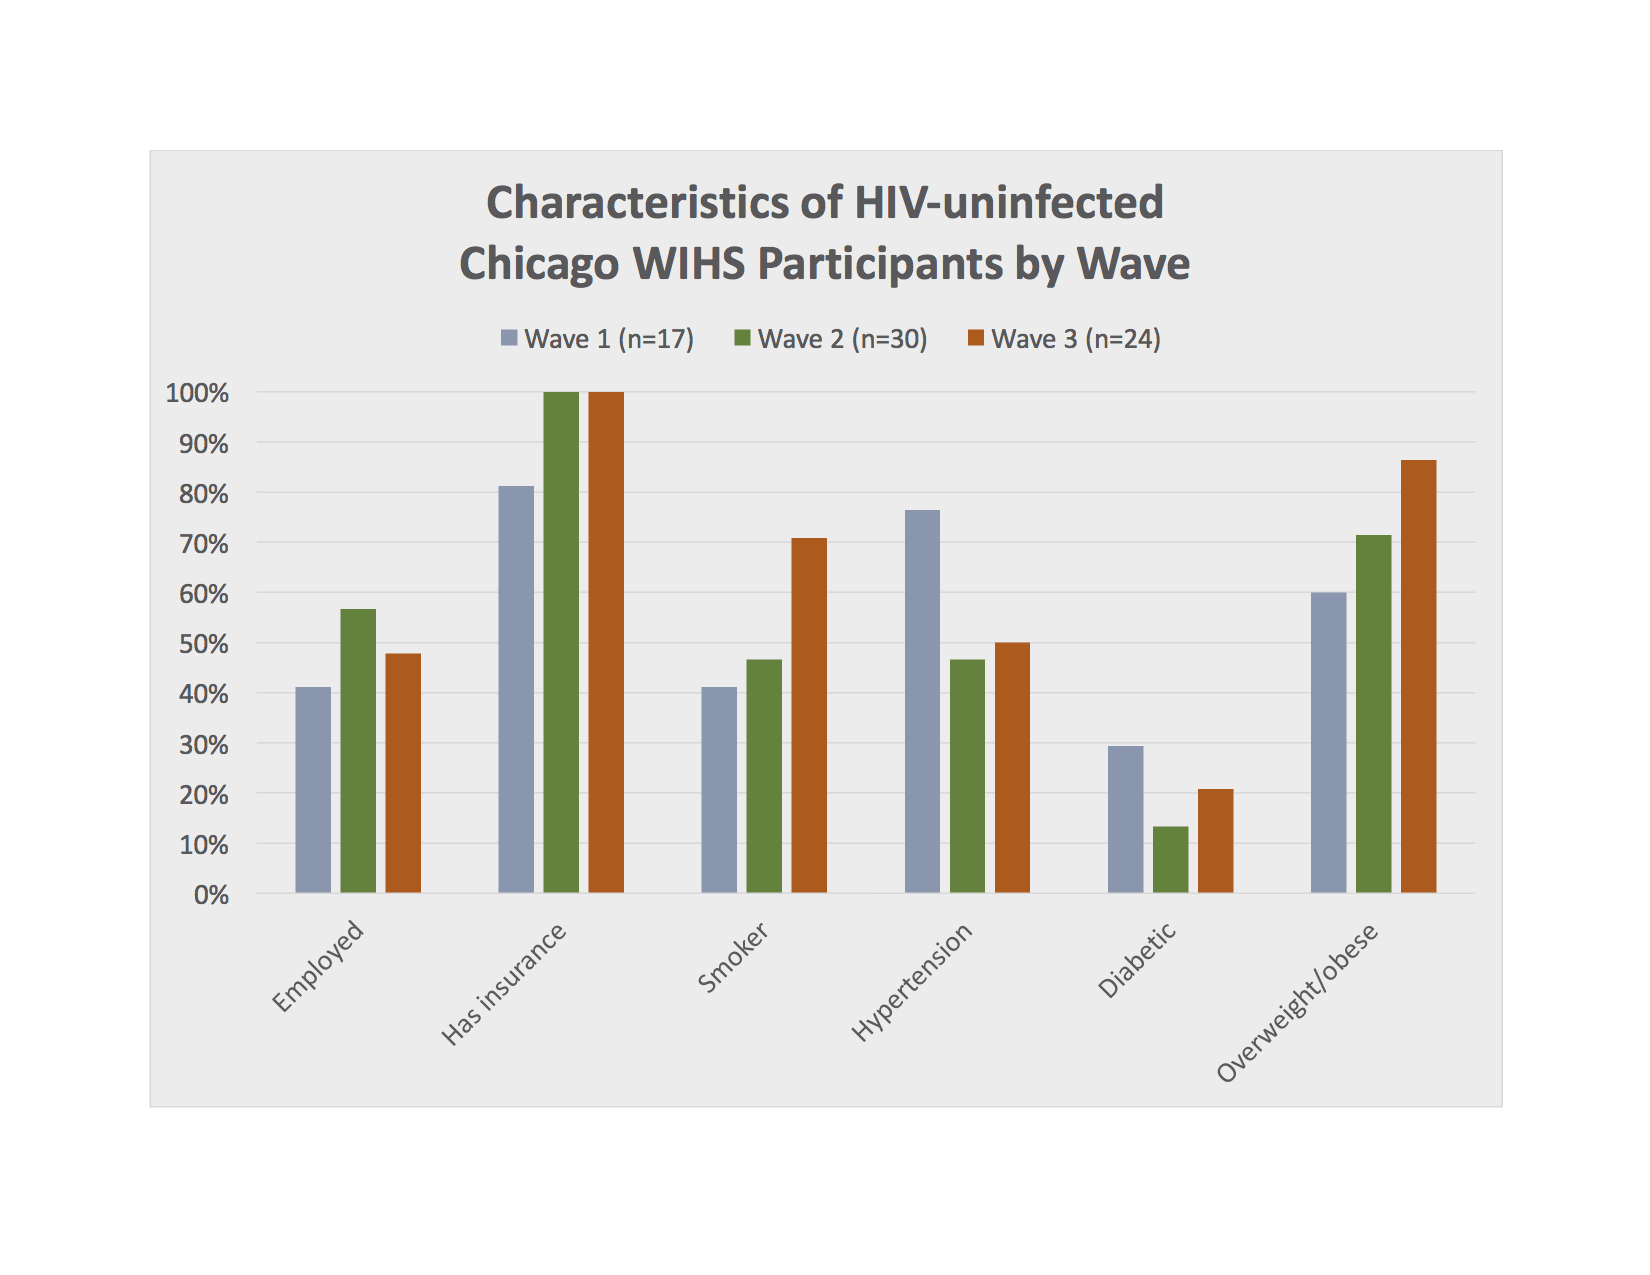 Characteristics of HIV-uninfected Chicago WIHS Participants by Wave